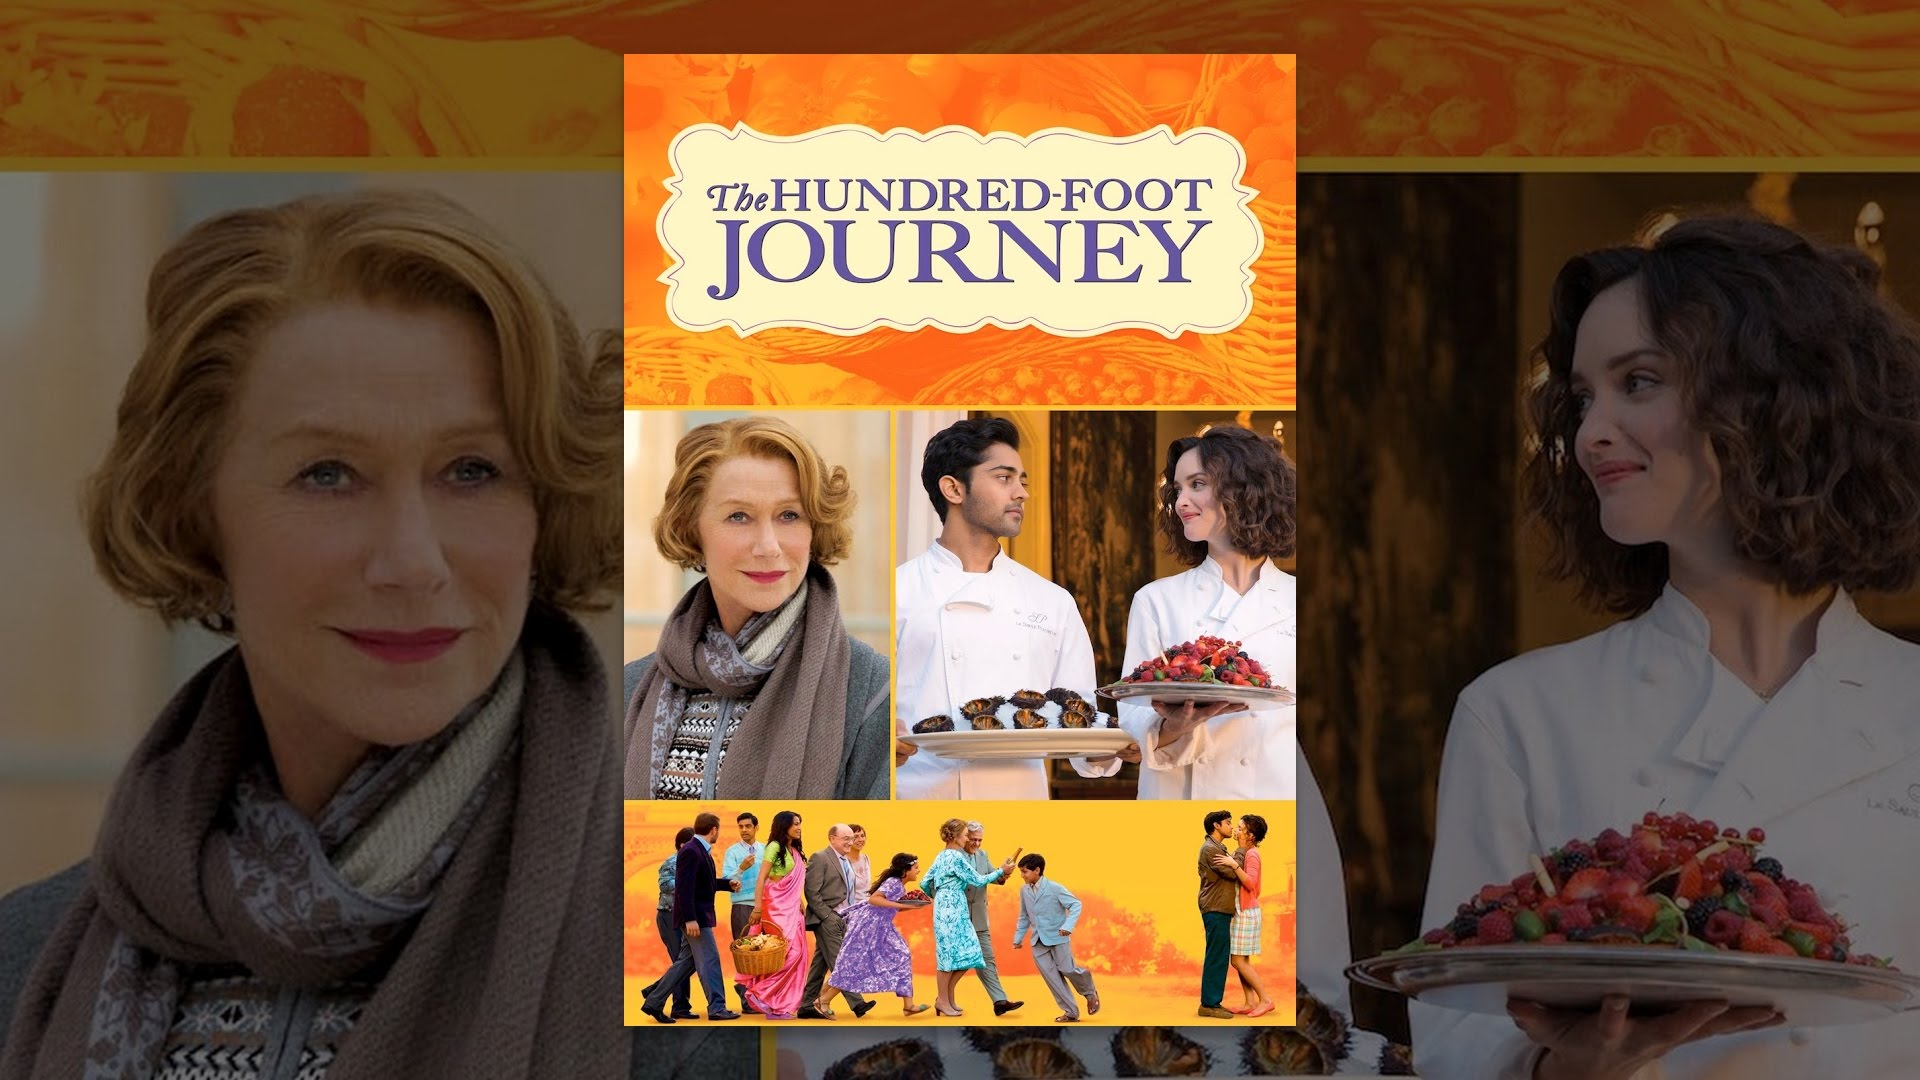 Download The Hundred-Foot Journey